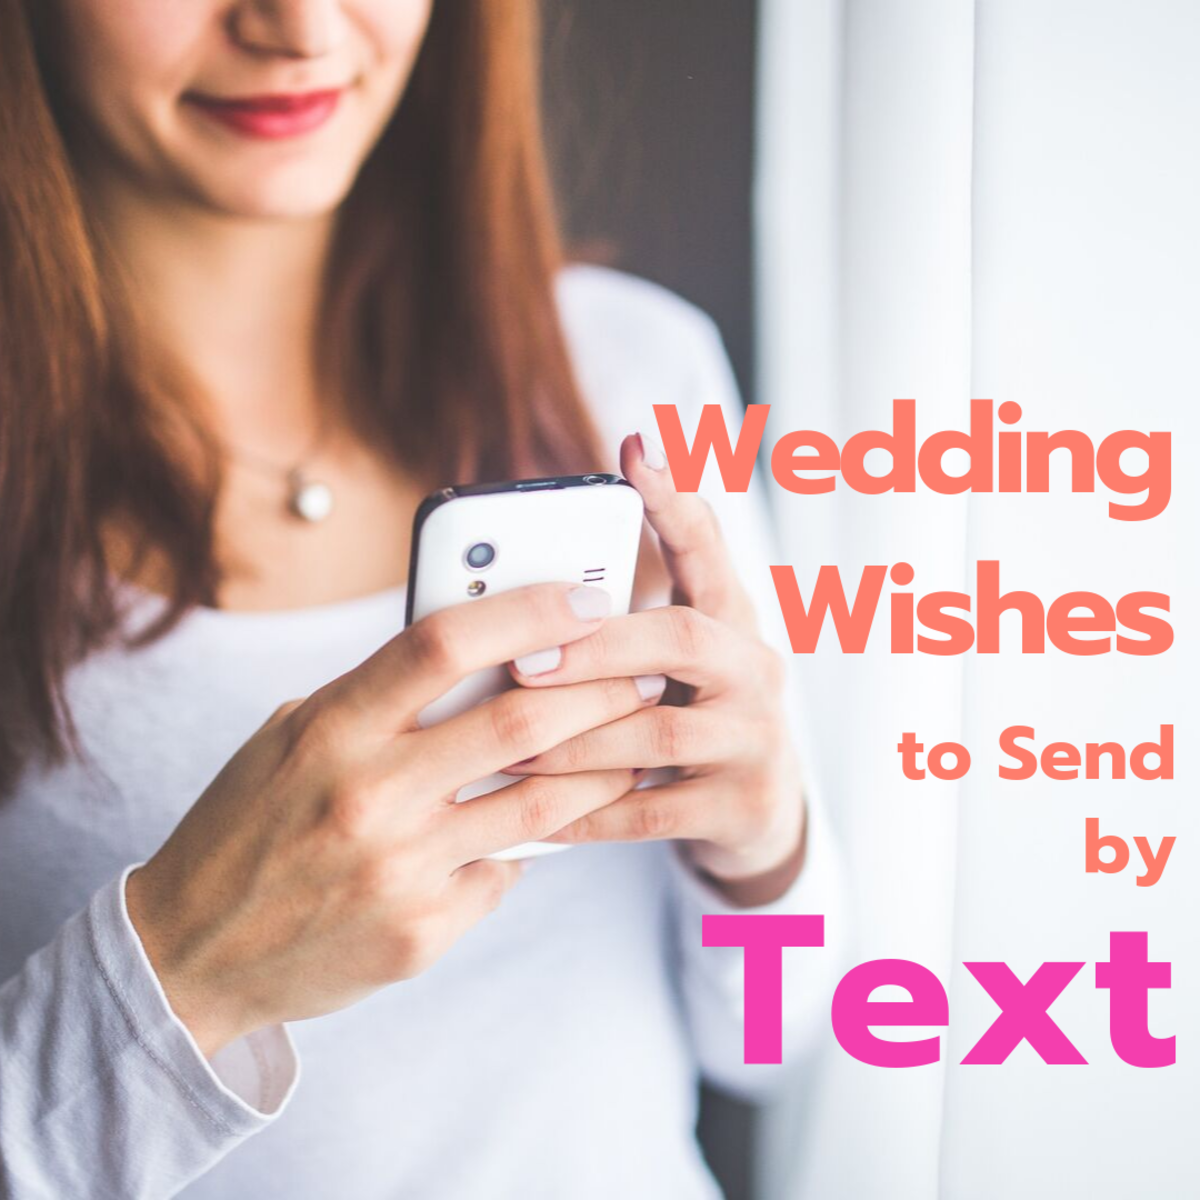 20+ Text Message Ideas for Sending Wedding Wishes